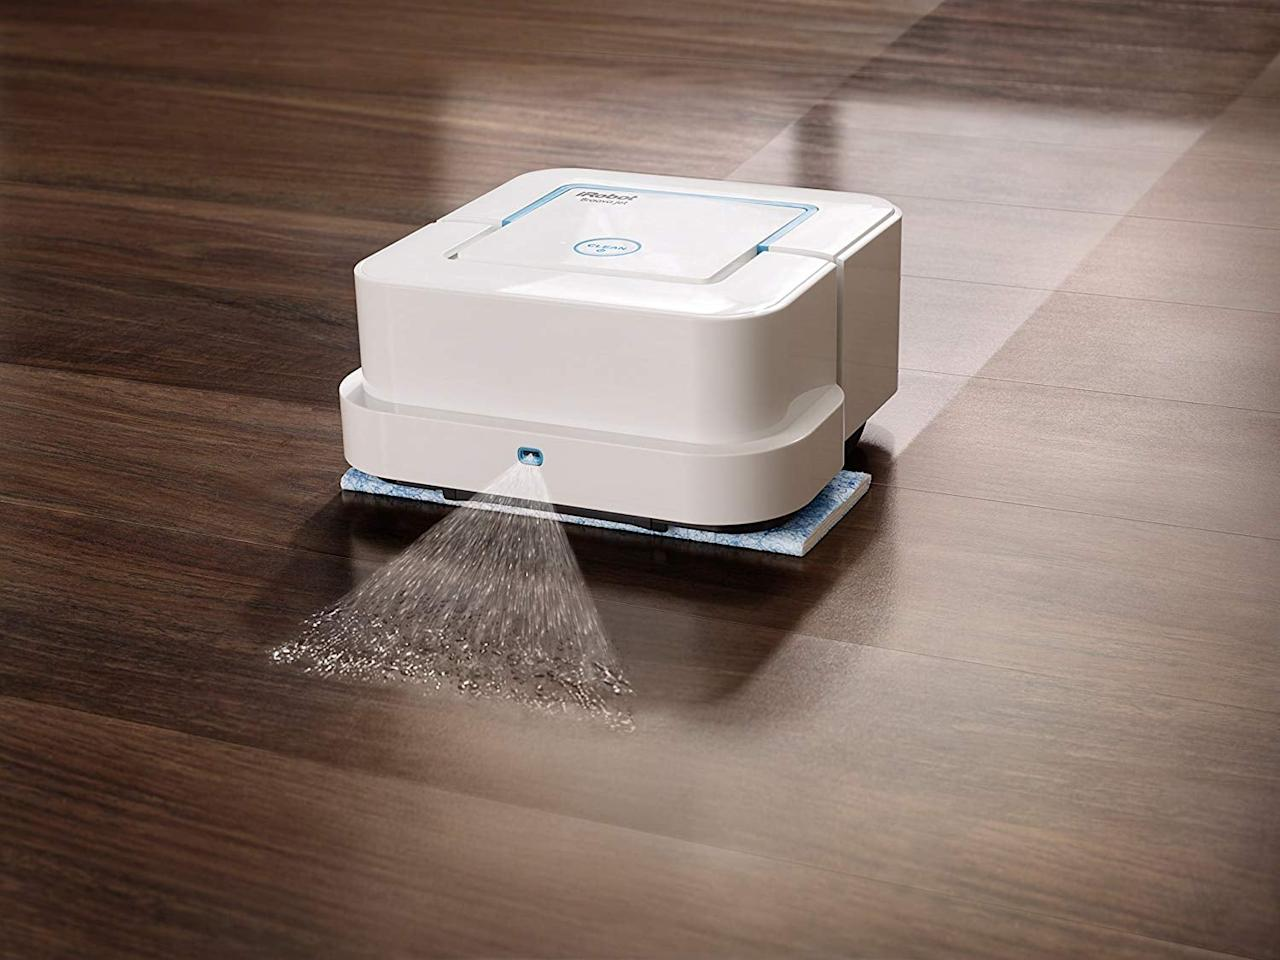 """<p>If you're a fan of the <a href=""""https://www.popsugar.com/family/Amazon-Prime-Day-Roomba-Vacuum-Sale-2018-45058517"""" class=""""ga-track"""" data-ga-category=""""Related"""" data-ga-label=""""https://www.popsugar.com/moms/Amazon-Prime-Day-Roomba-Vacuum-Sale-2018-45058517"""" data-ga-action=""""In-Line Links"""">iRobot vacuum</a>, then you'll want to give this <a href=""""https://www.popsugar.com/buy/iRobot-Braava-Jet-240-Robot-Mop-402779?p_name=iRobot%20Braava%20Jet%20240%20Robot%20Mop&retailer=amazon.com&pid=402779&price=170&evar1=casa%3Aus&evar9=47079090&evar98=https%3A%2F%2Fwww.popsugar.com%2Fphoto-gallery%2F47079090%2Fimage%2F47080752%2FiRobot-Braava-Jet-240-Robot-Mop&list1=home%2Cshopping%2Camazon%2Cgadgets%2Cfurniture%2Cdecor%2Chome%20shopping&prop13=api&pdata=1"""" rel=""""nofollow"""" data-shoppable-link=""""1"""" target=""""_blank"""" class=""""ga-track"""" data-ga-category=""""Related"""" data-ga-label=""""https://www.amazon.com/iRobot-Braava-jet-240-Robot/dp/B019OH9898?ref_=bl_dp_s_web_2594102011"""" data-ga-action=""""In-Line Links"""">iRobot Braava Jet 240 Robot Mop</a> ($170, originally $199) a try. It will clean your floors when you're not around, so you have nothing to worry about later.</p>"""